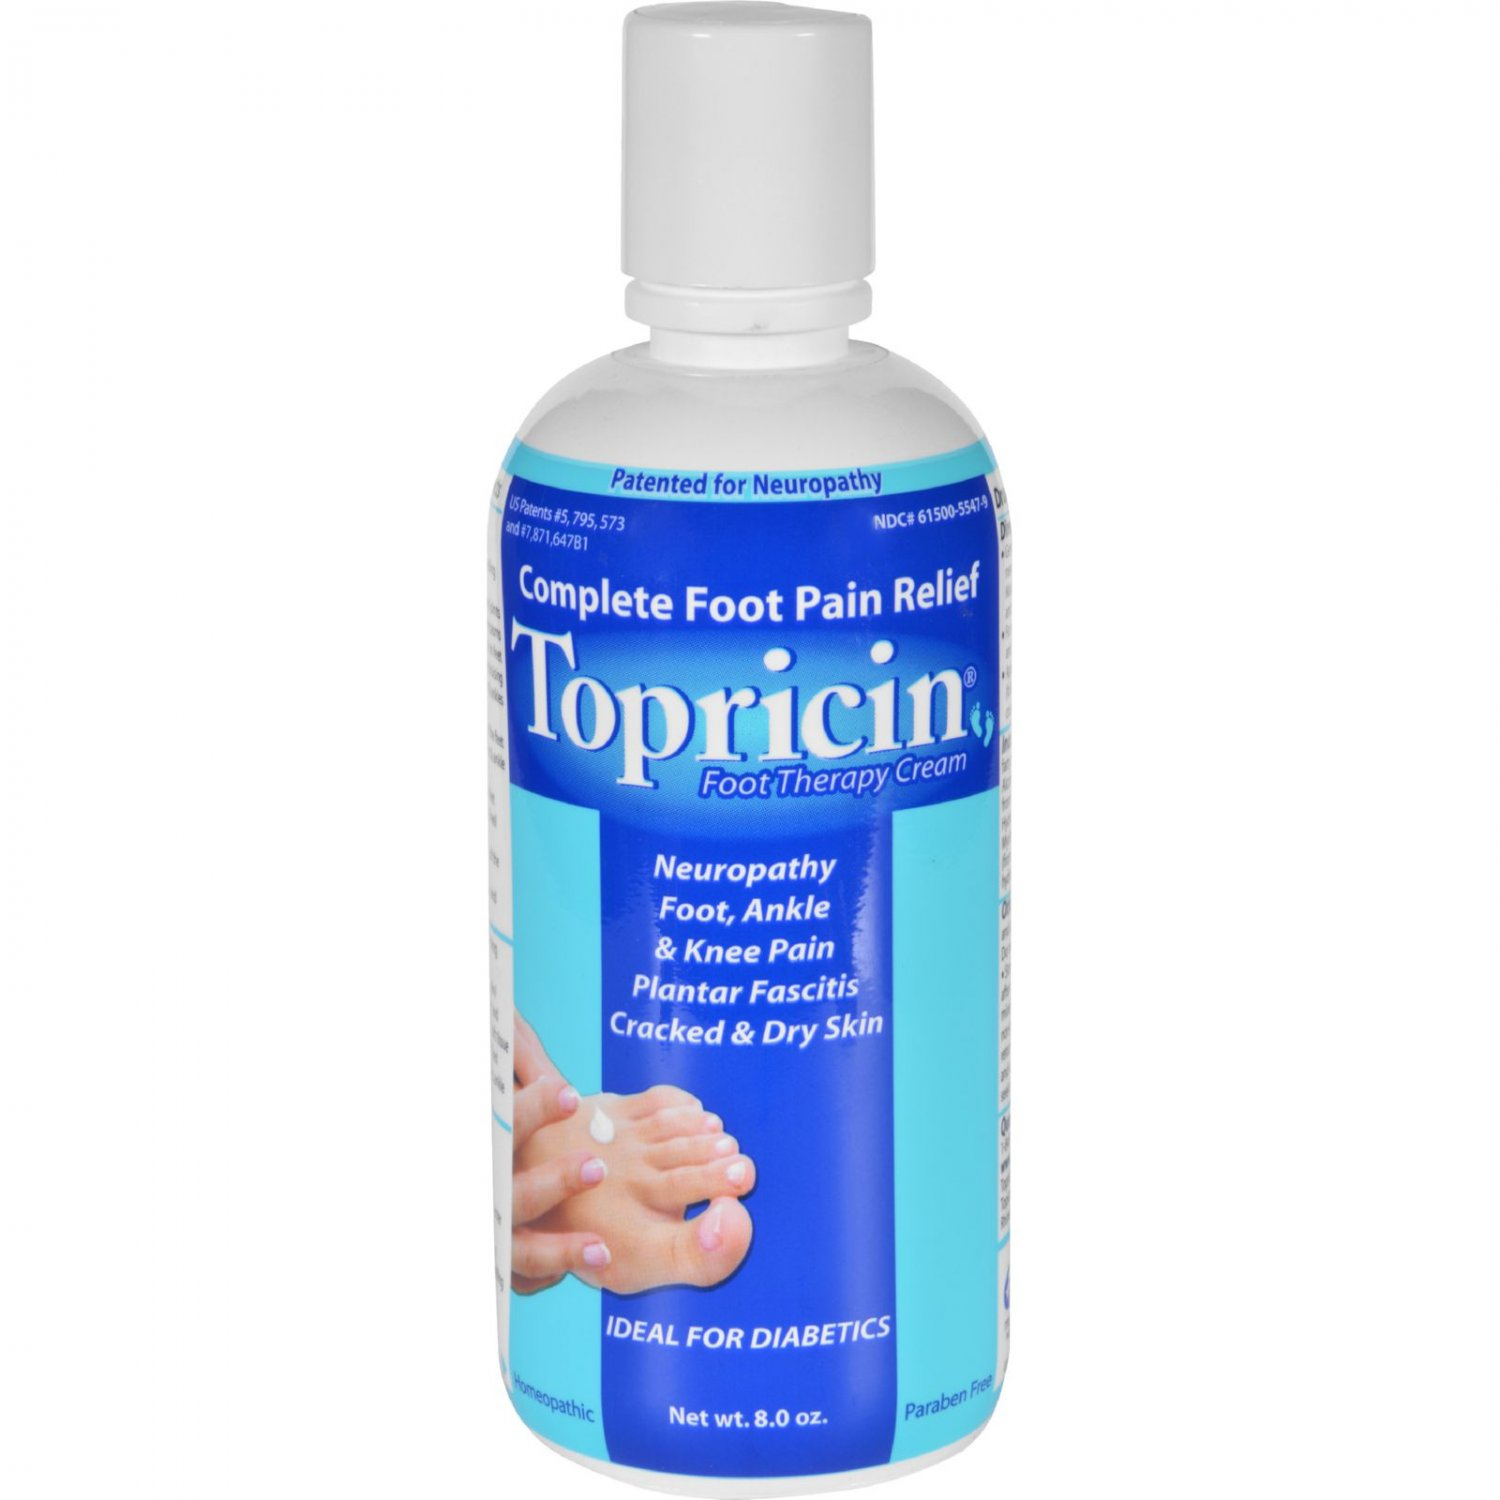 Topricin Foot Therapy Cream - 8 oz